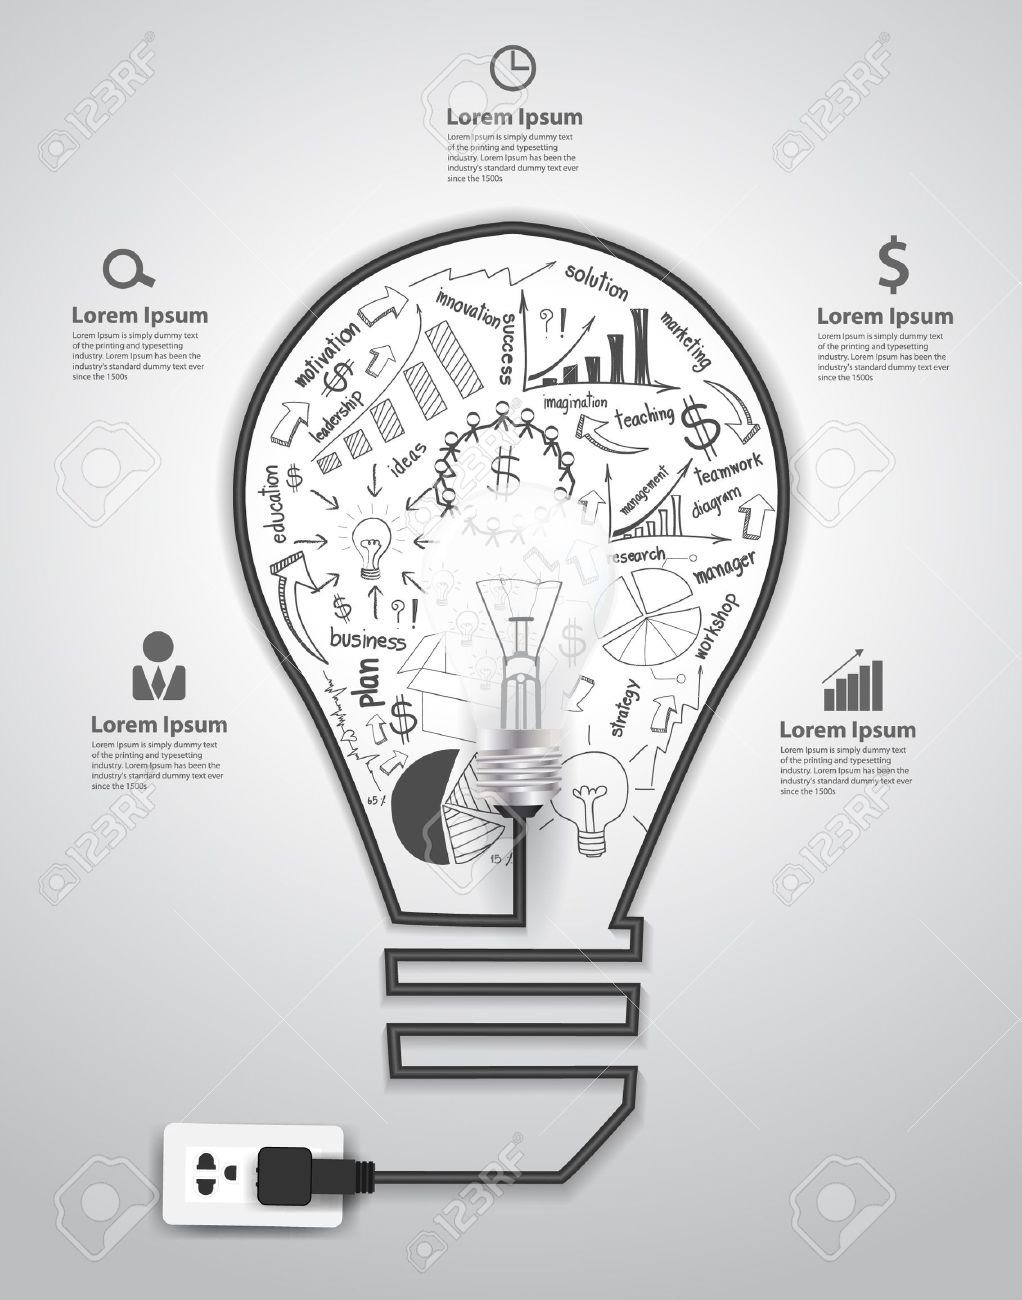 Creative light bulb with drawing charts and graphs business success strategy plan concept idea, Vector illustration modern template design Stock Vector - 21725078